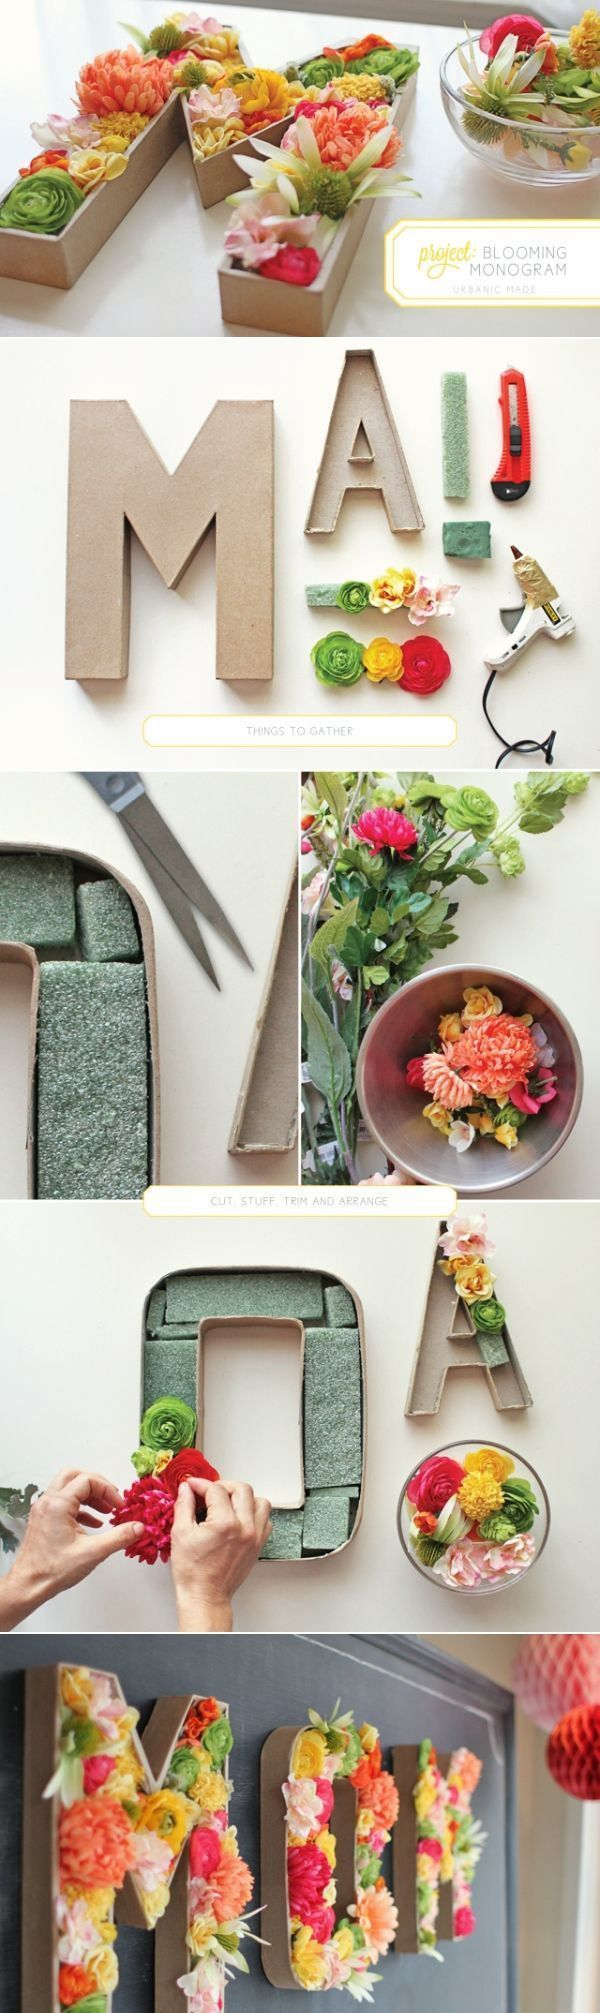 DIY Mothers Day Decoration: Blooming Monogram gives flower lovers a cheerful surprise.